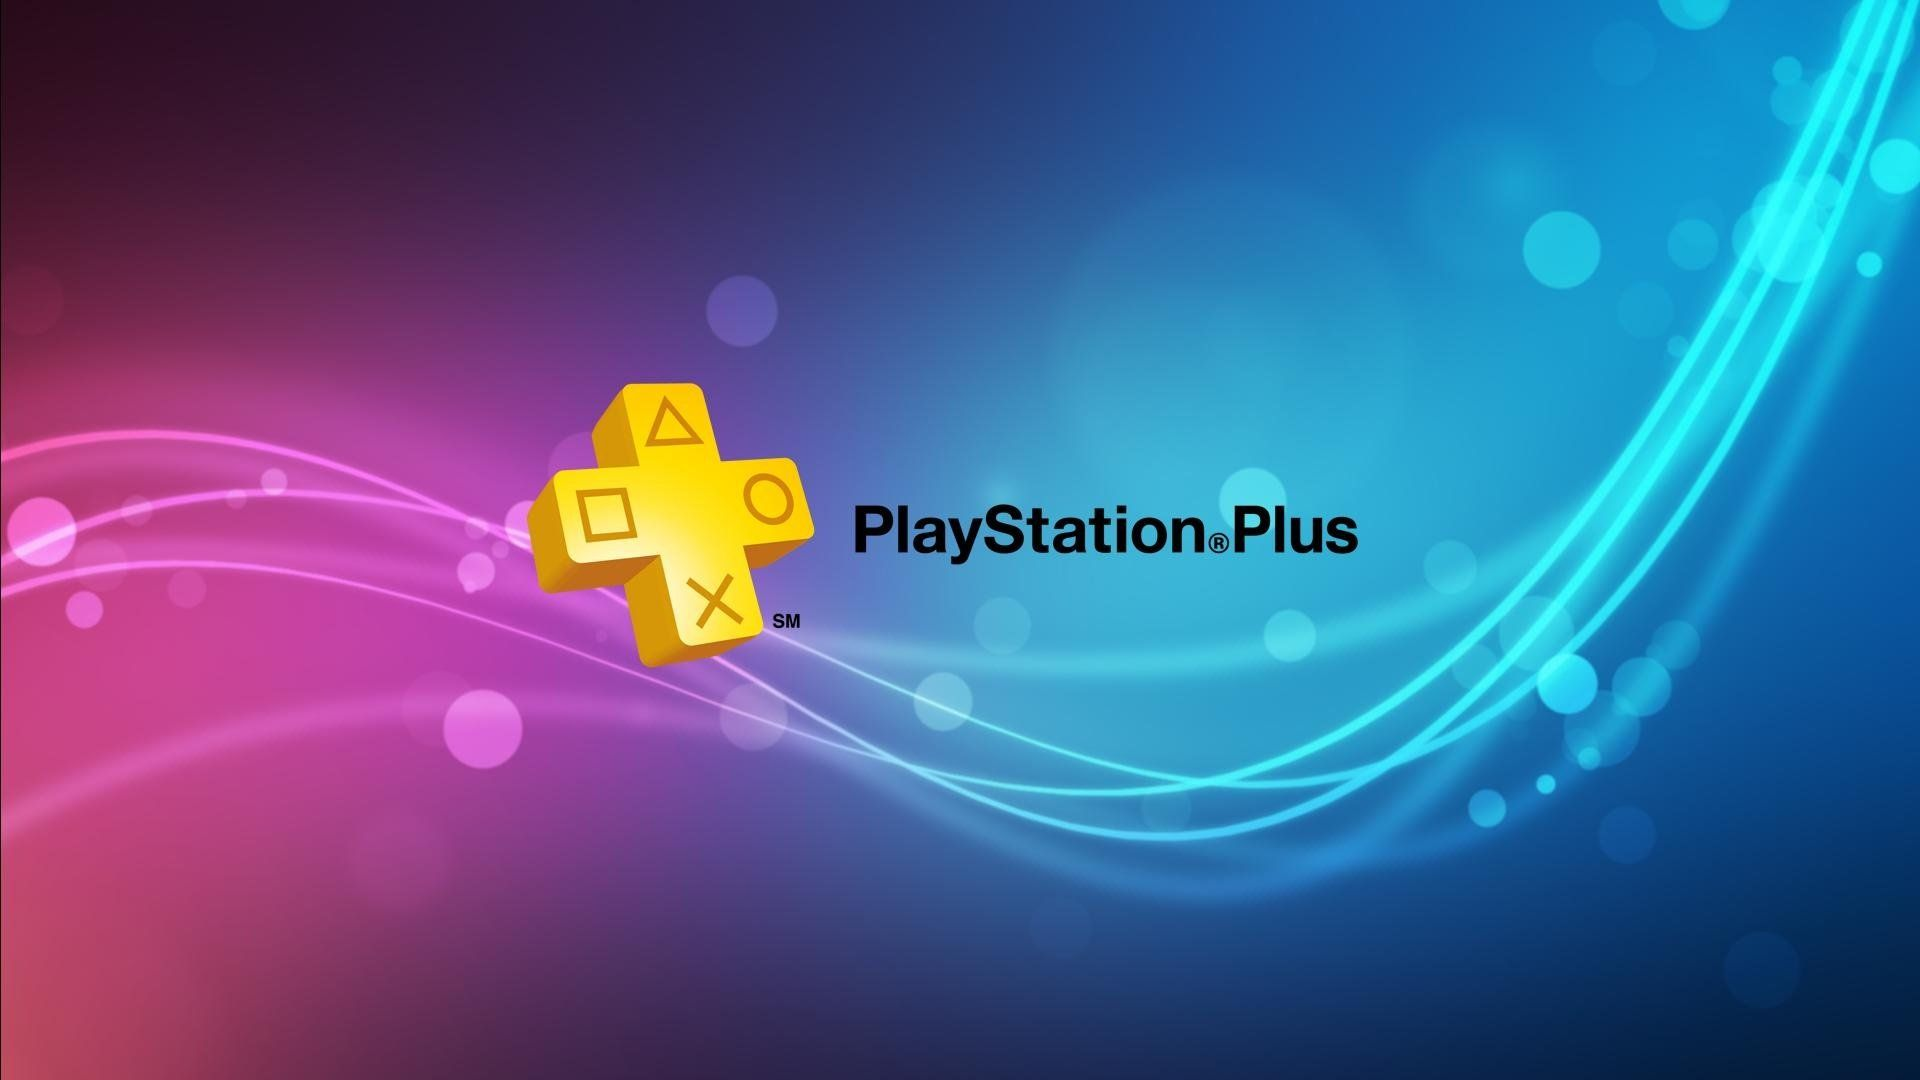 Playstation Plus Wallpapers Wallpaper Cave